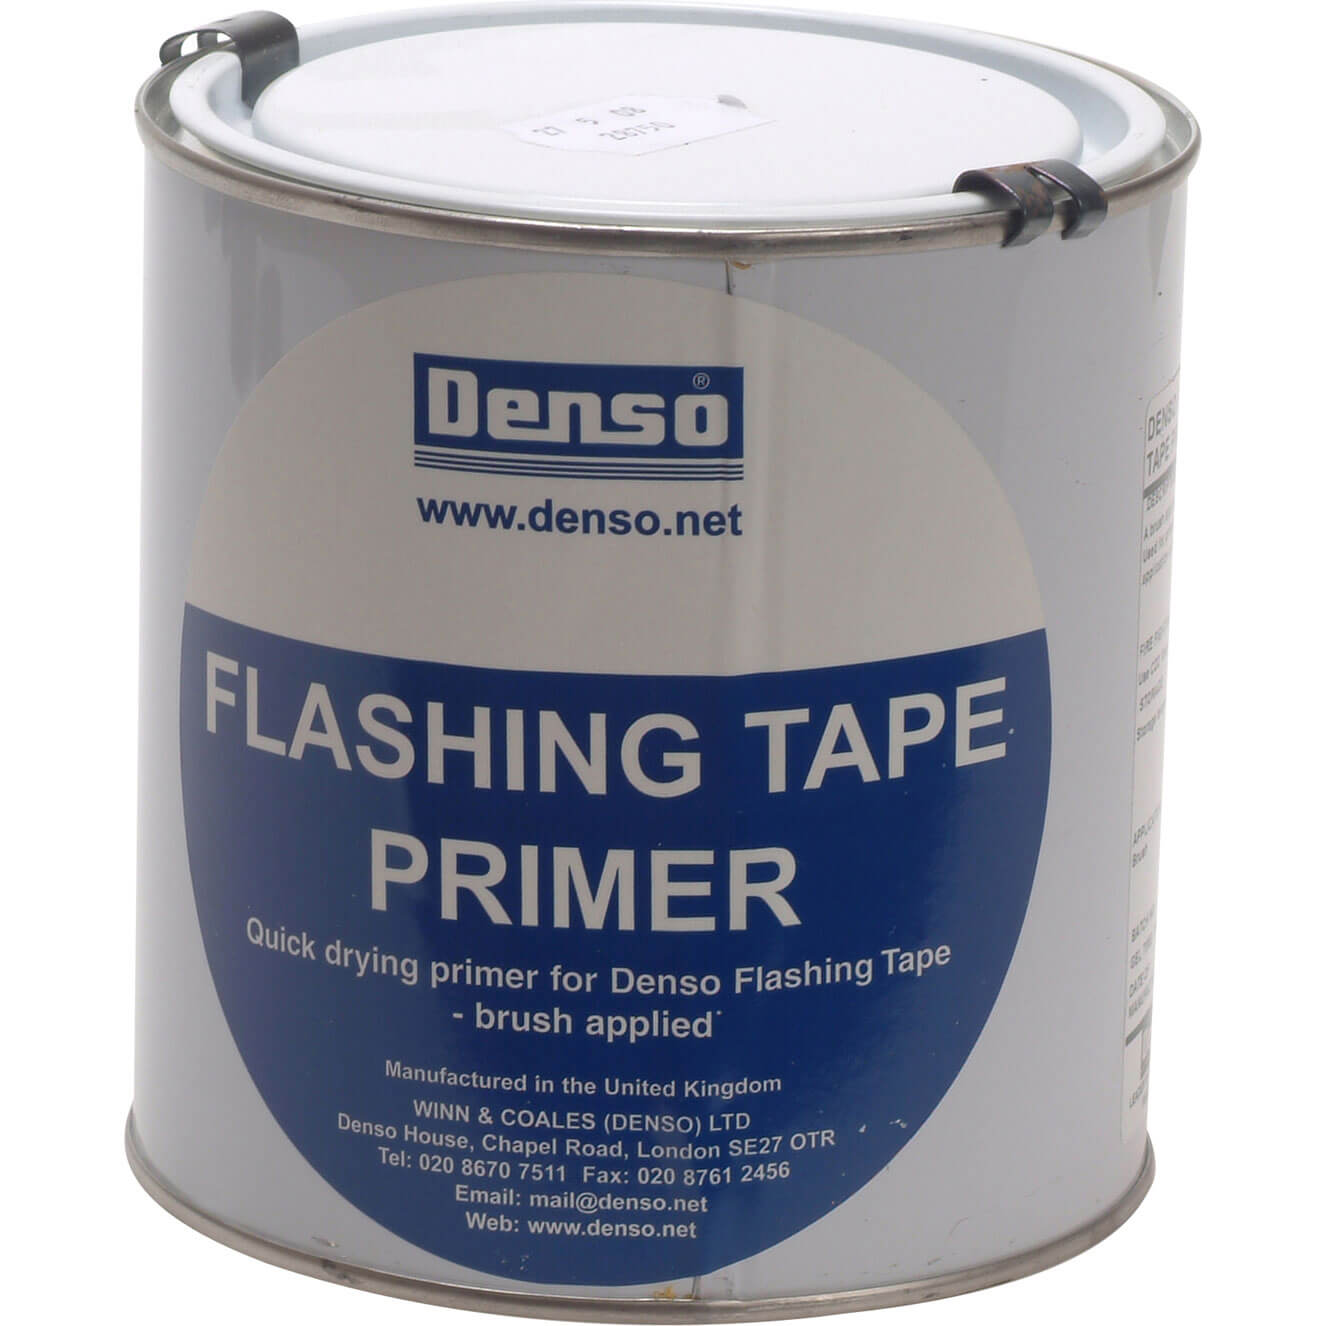 Denso Tape Flashing Tape Primer 1L